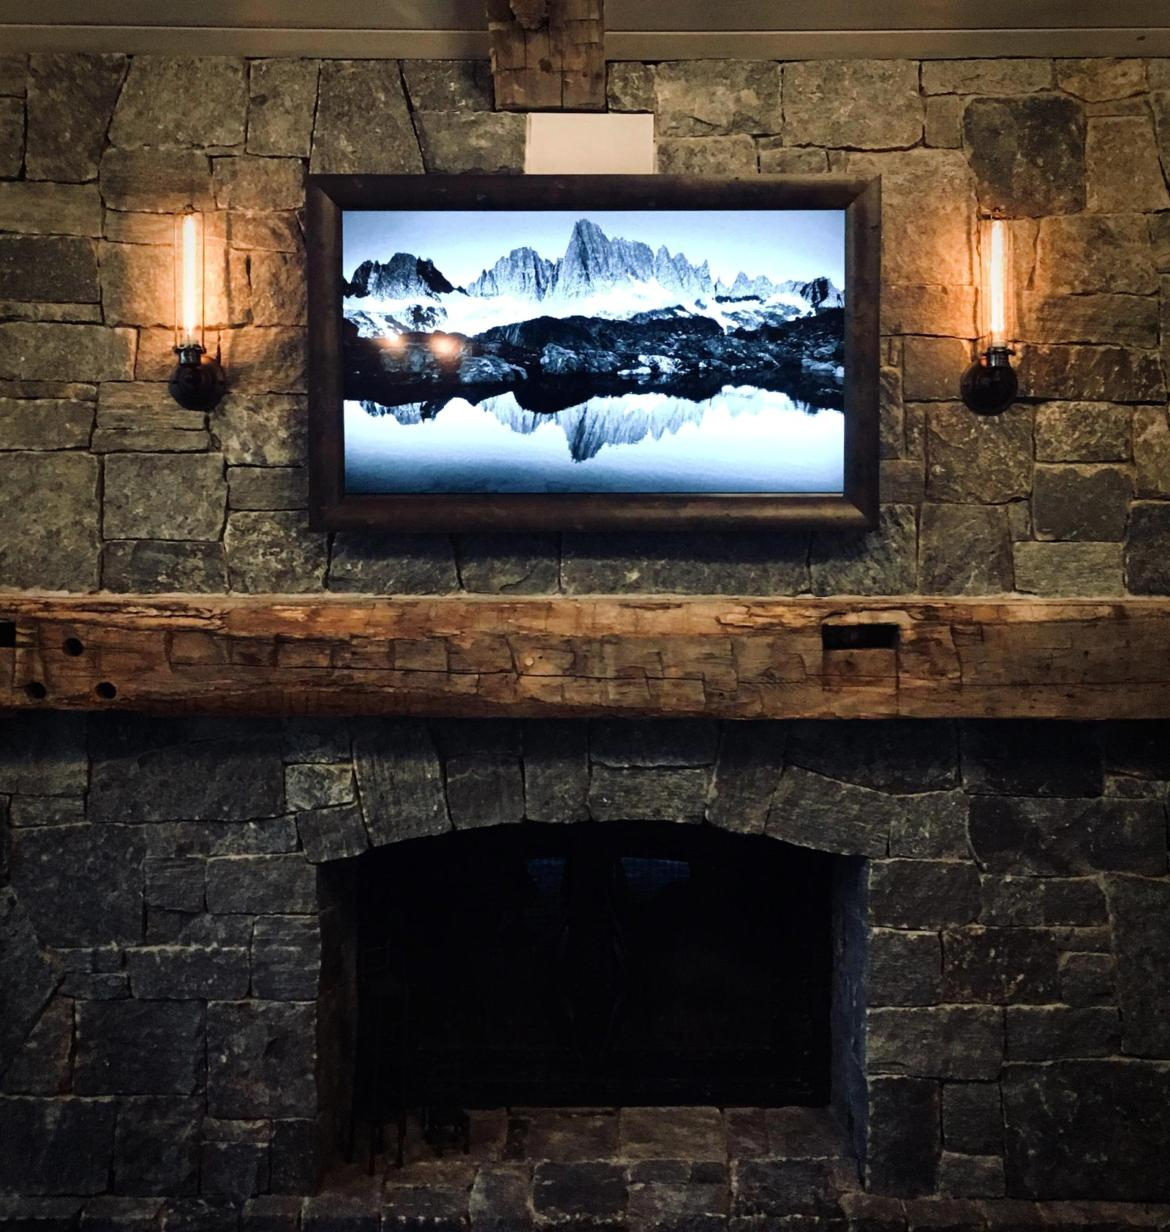 Framed Flat Screen TV above the mantel - Talie Jane Interiors